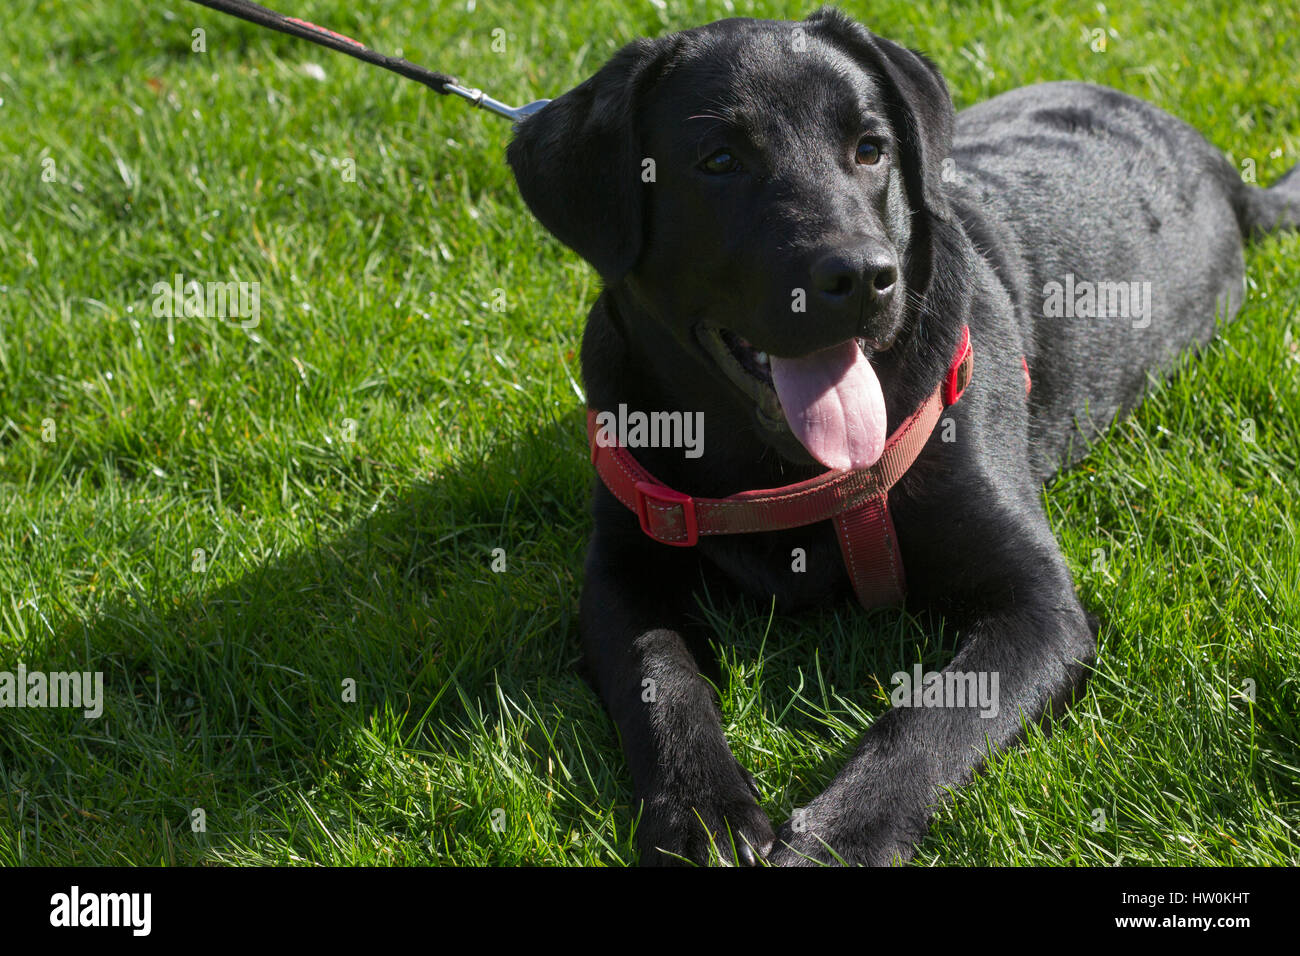 Dogs playing in Bute park, Cardiff with their owners. - Stock Image